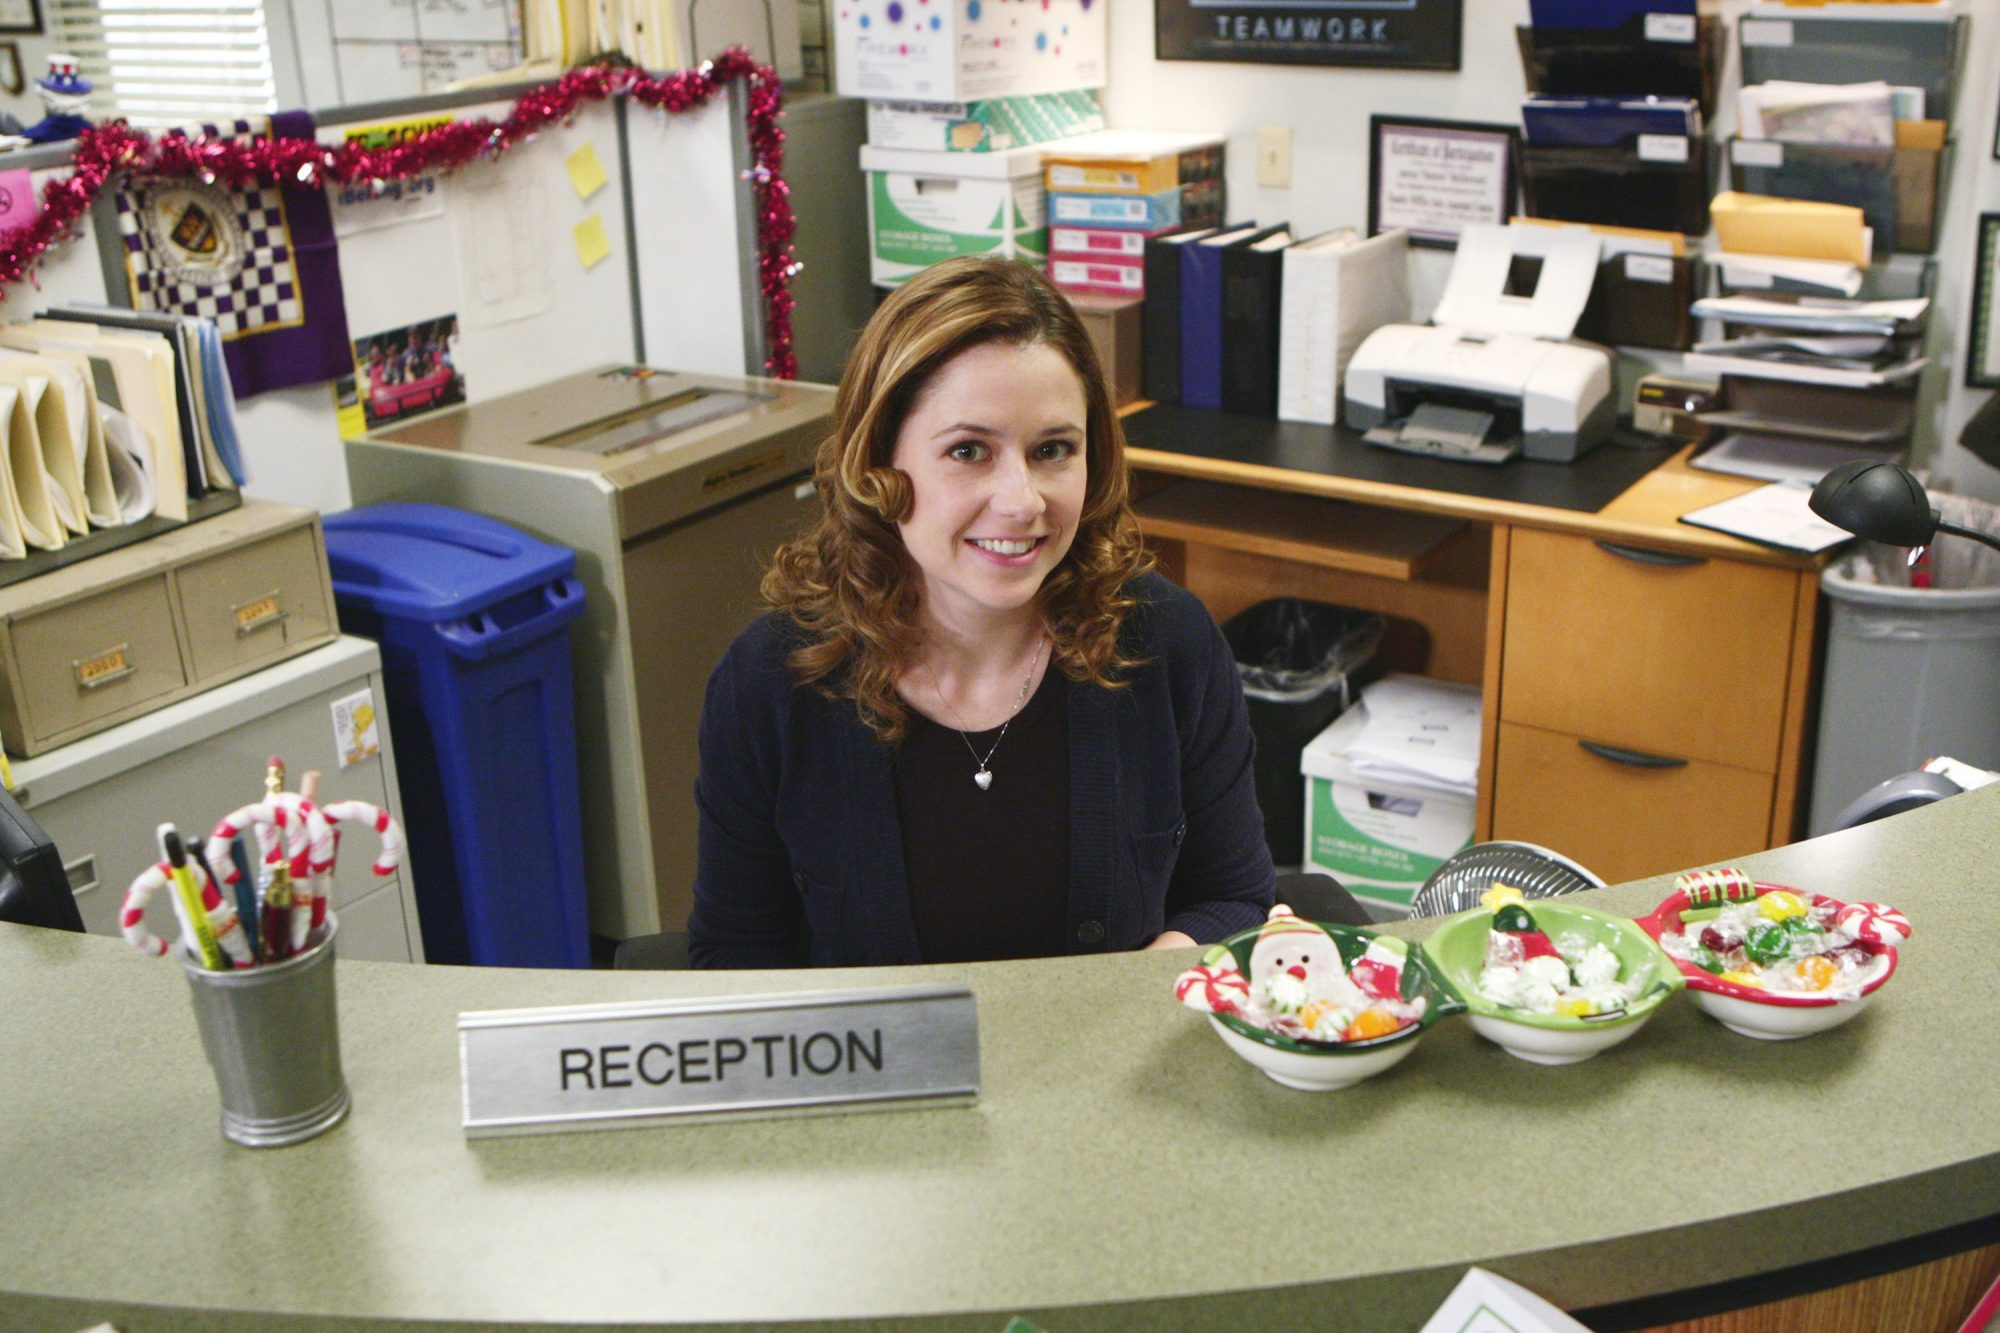 pam in the office tv show, jenna fisher